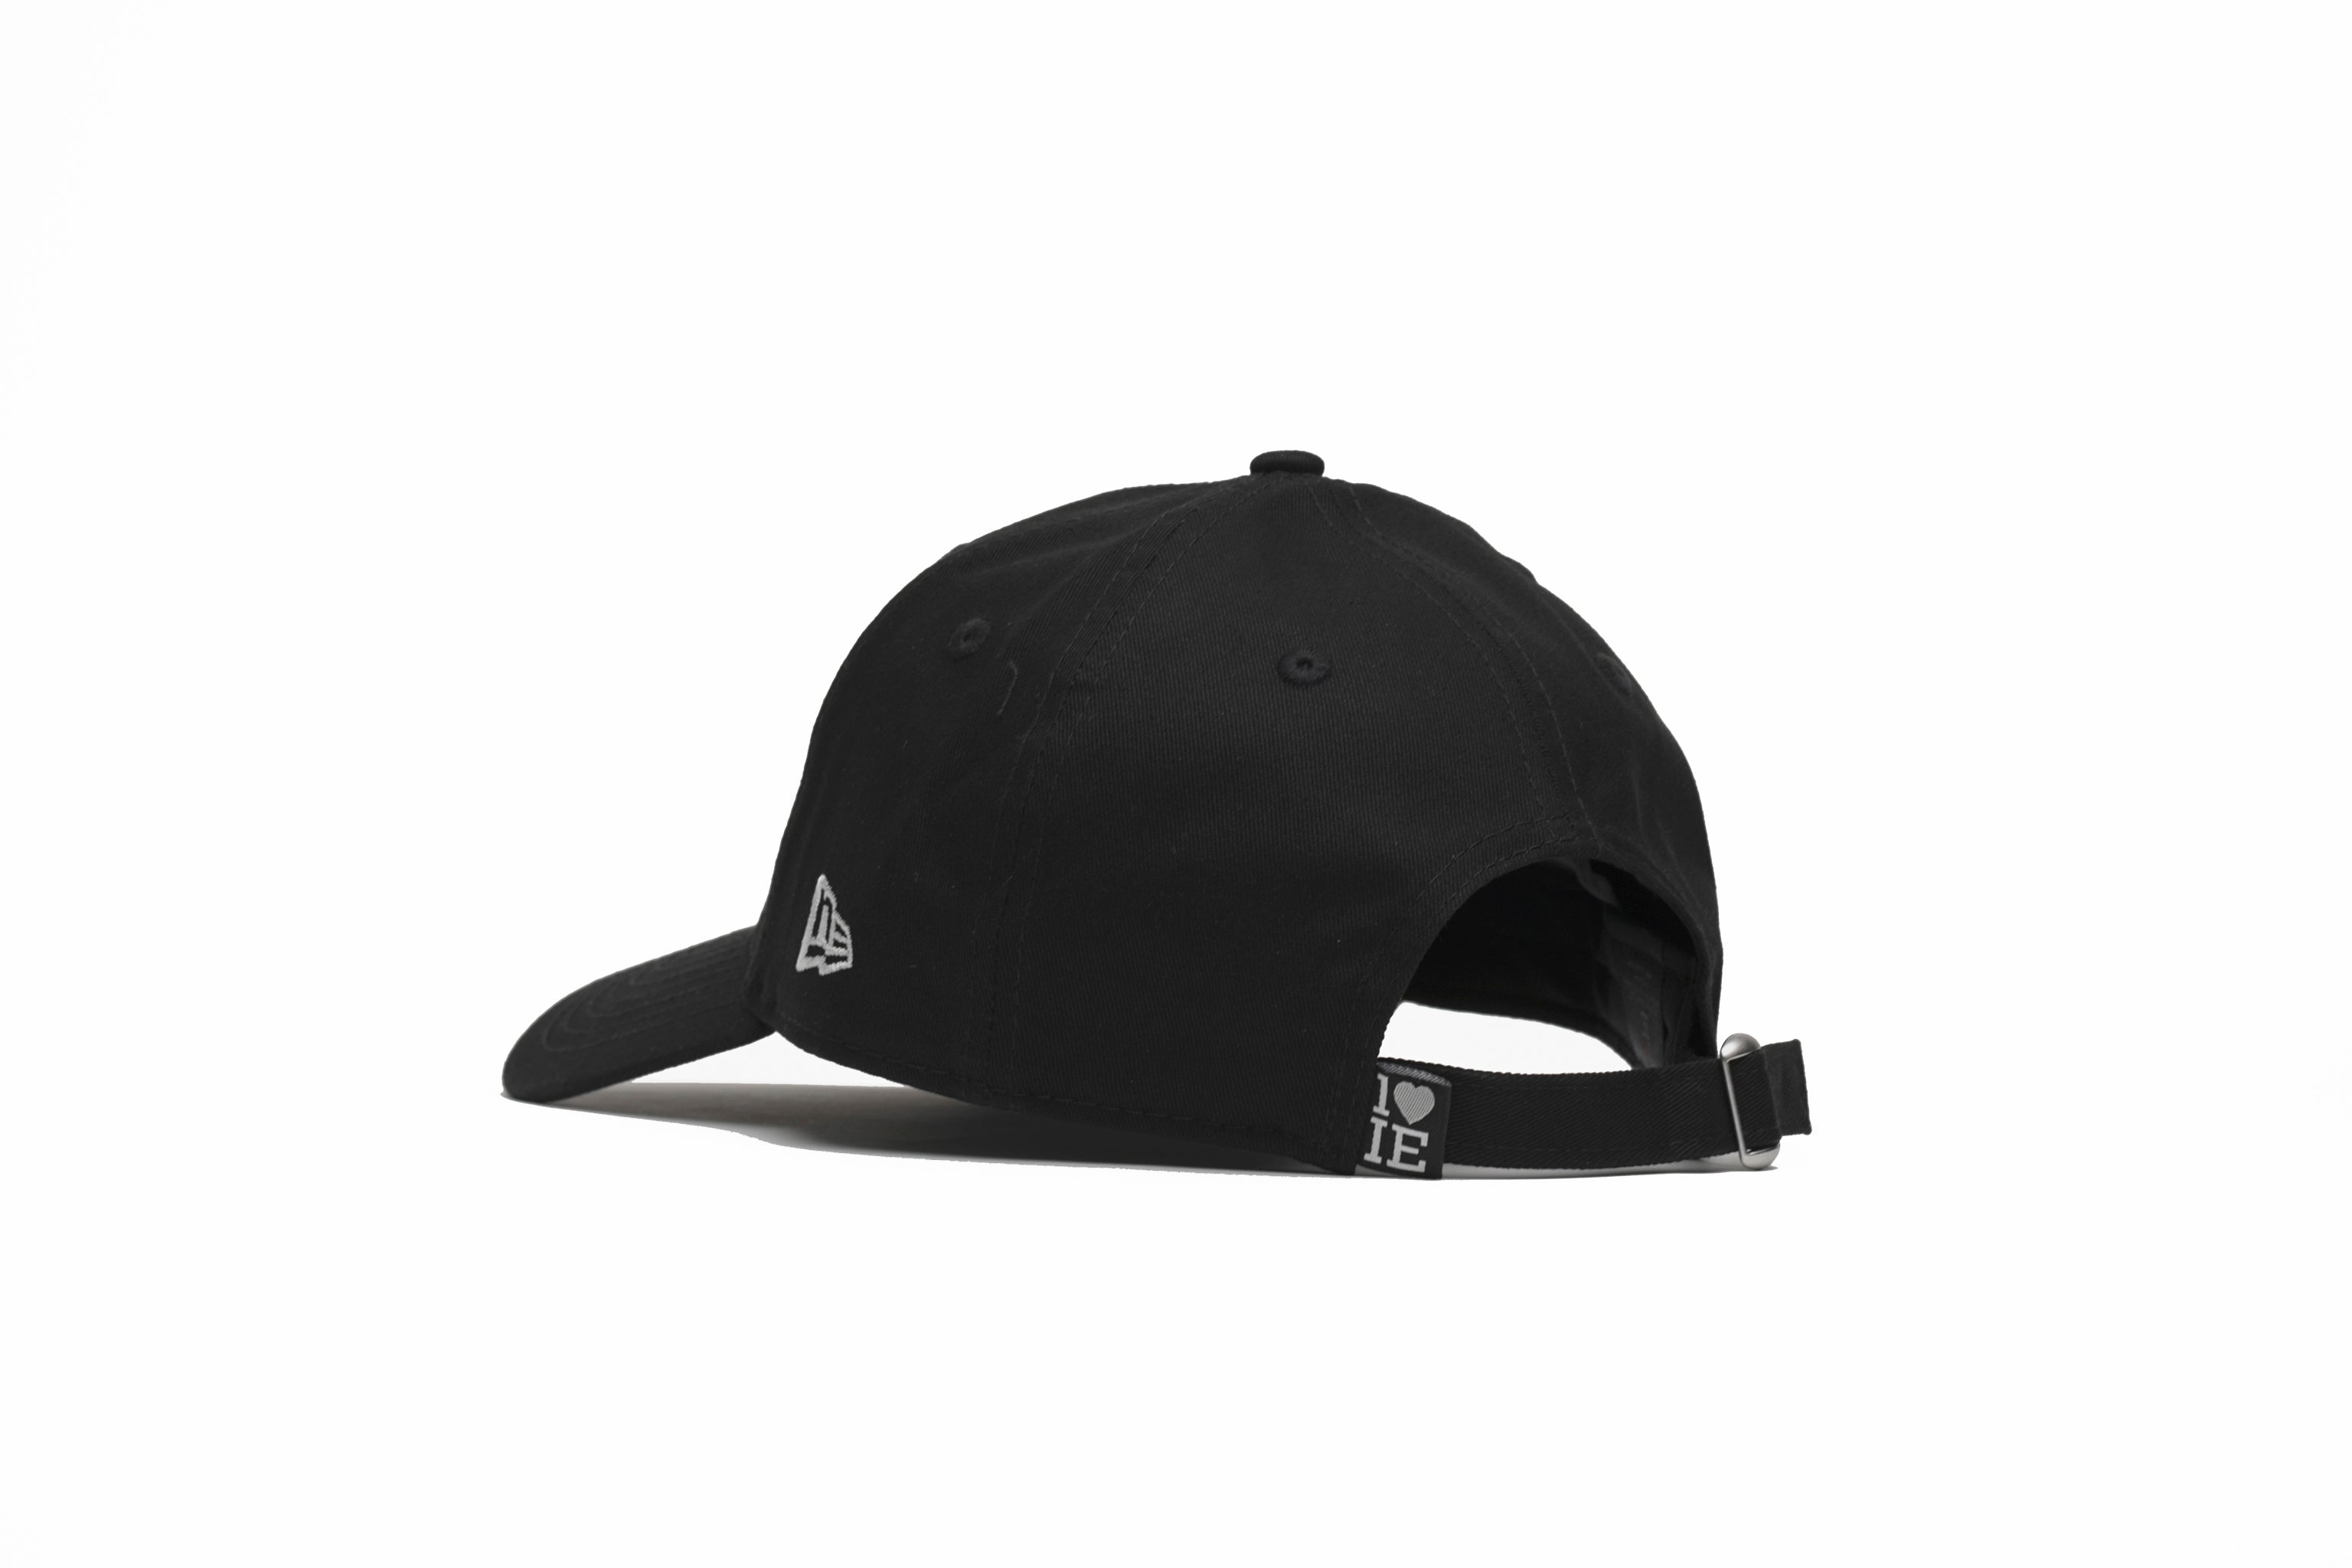 Limited Black & White 1LoveIE 9Twenty Dad Cap